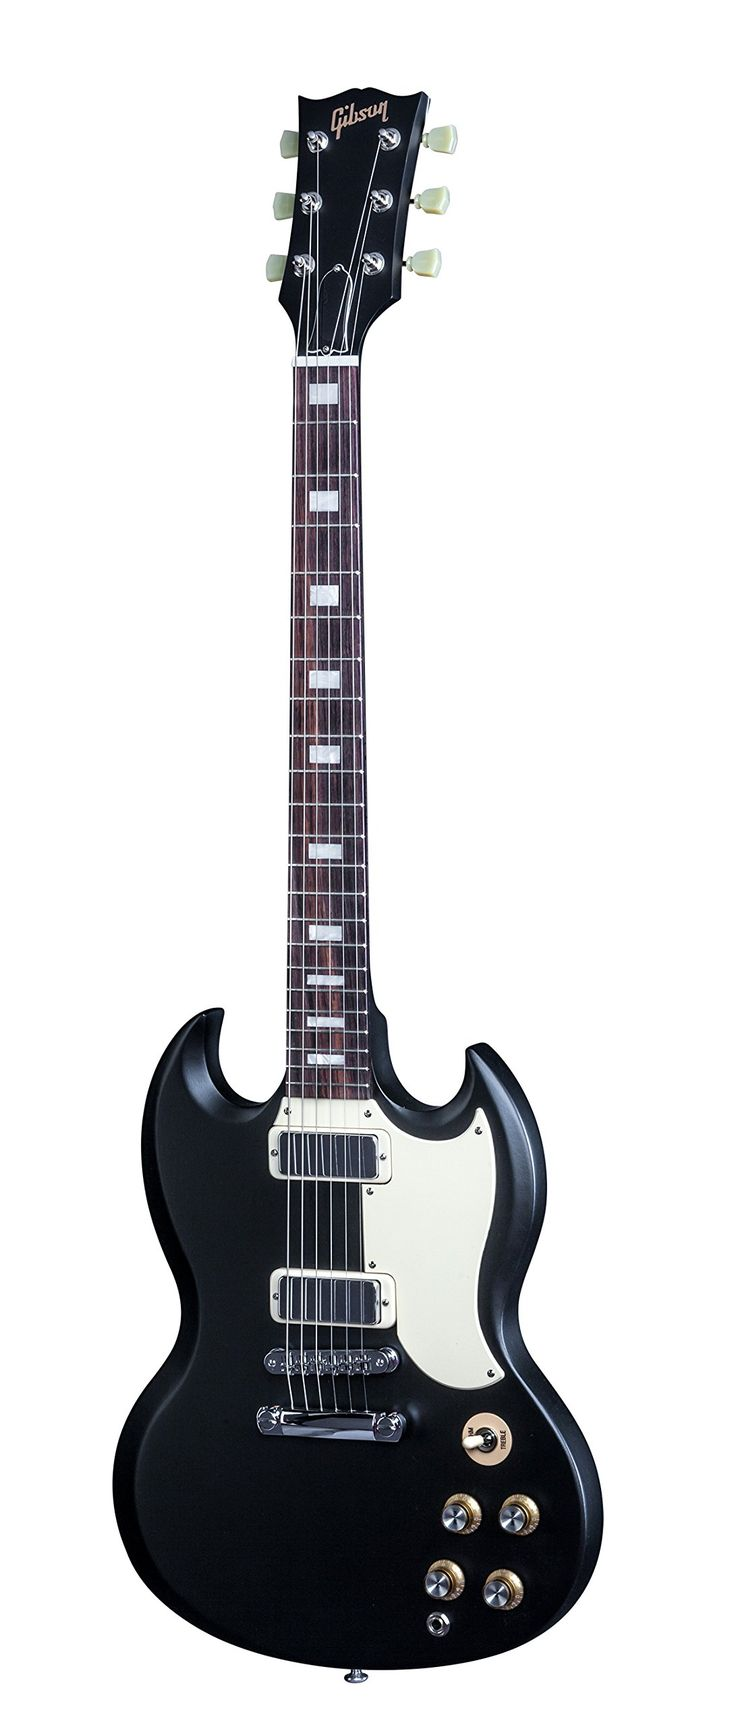 """Gibson SG Special 2016 T Electric Guitar, Satin Ebony. Along with other guitars in Gibson USA's 2016 Traditional series the SG Faded has our original width of 1 11/16"""" at the nut, historic neck heel shape, standard high-quality manual tuners. With a traditional Graph Tech nut, and a thicker one-piece rosewood fingerboard with a hand-rubbed oil finish for a plush look and feel. Put it together, and its superb value in an American-made Gibson guitar that captures the vibe of the great…"""